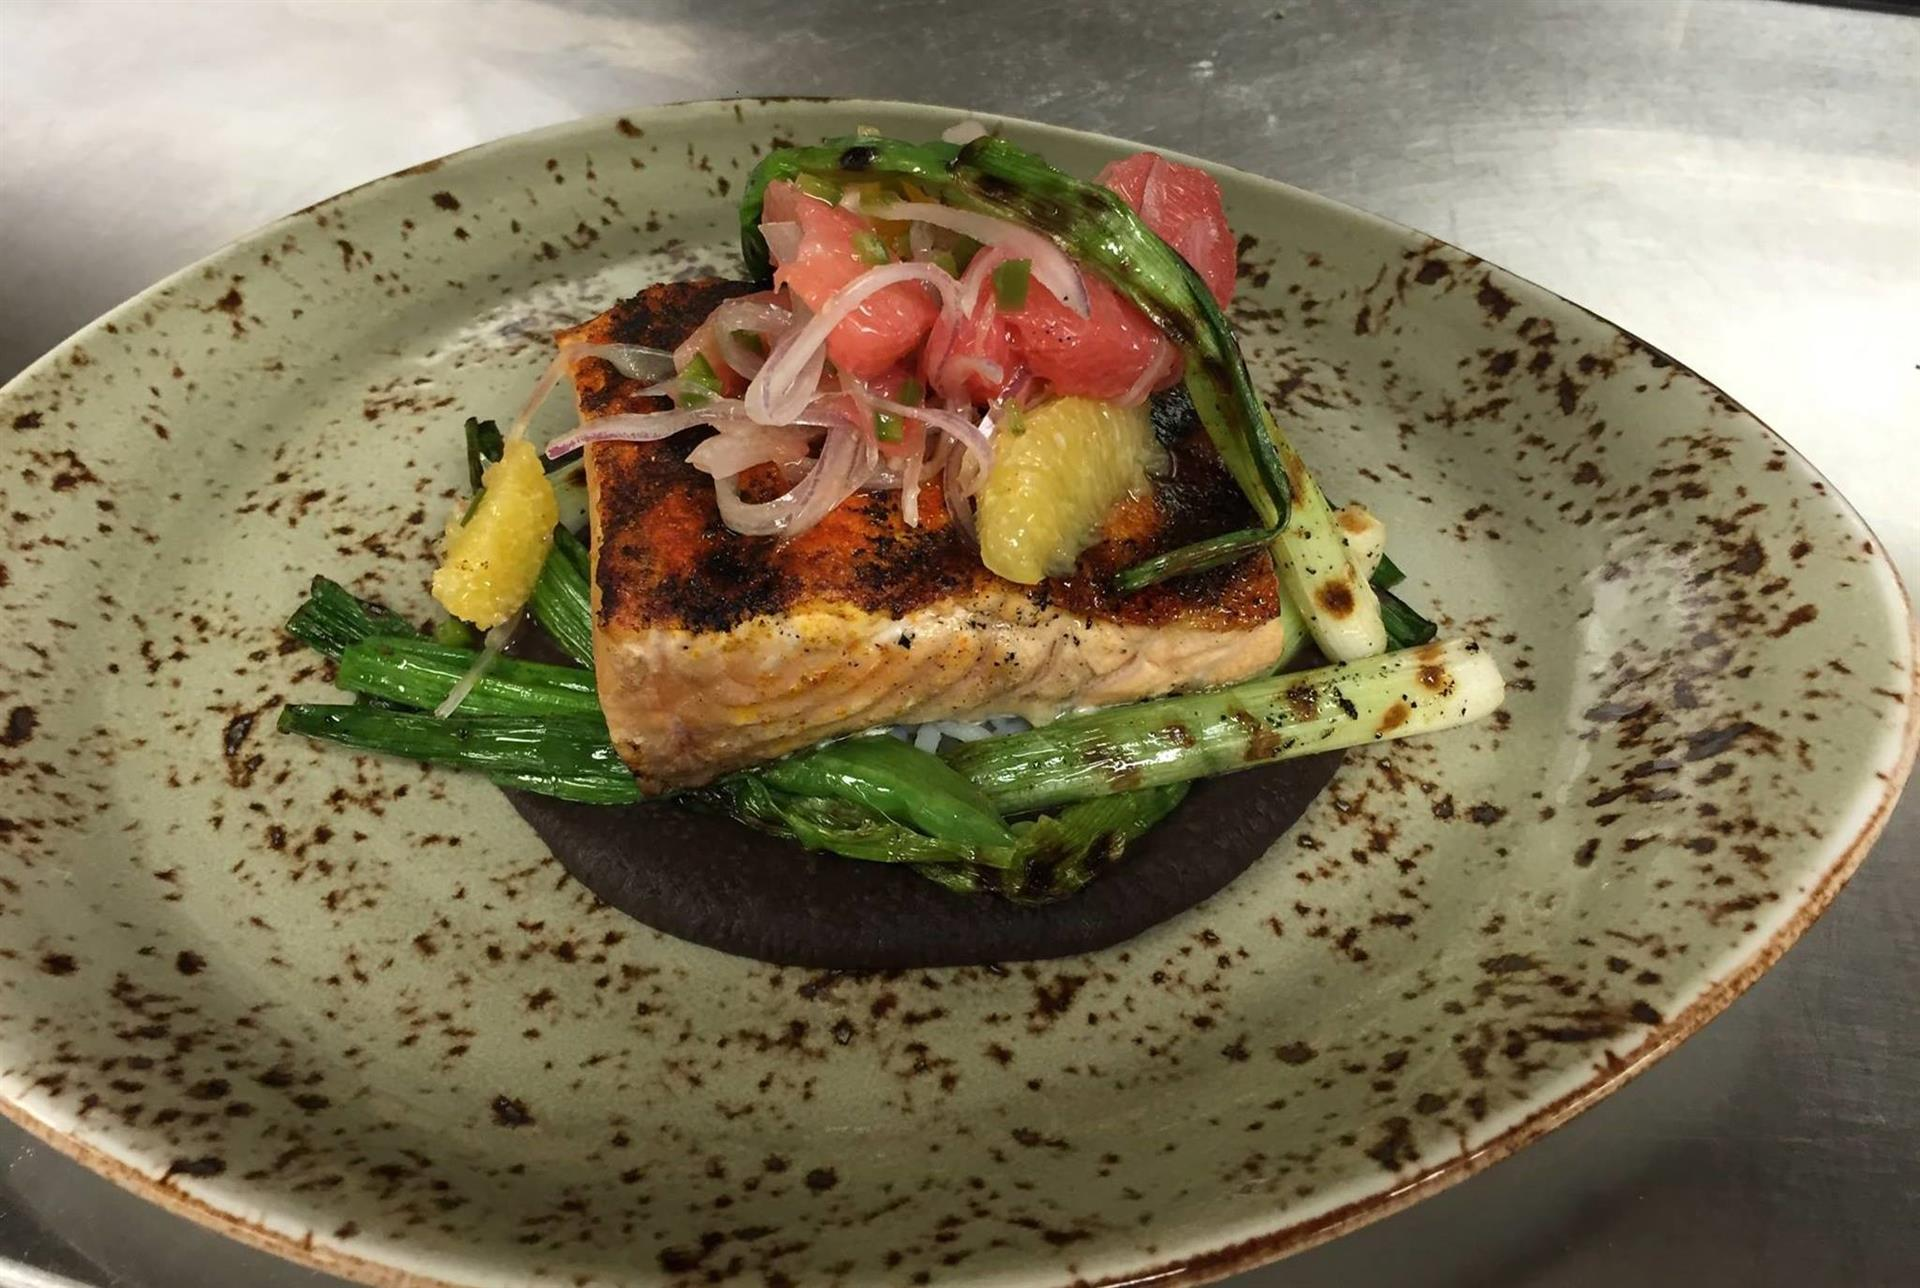 Salmon topped with asparagus